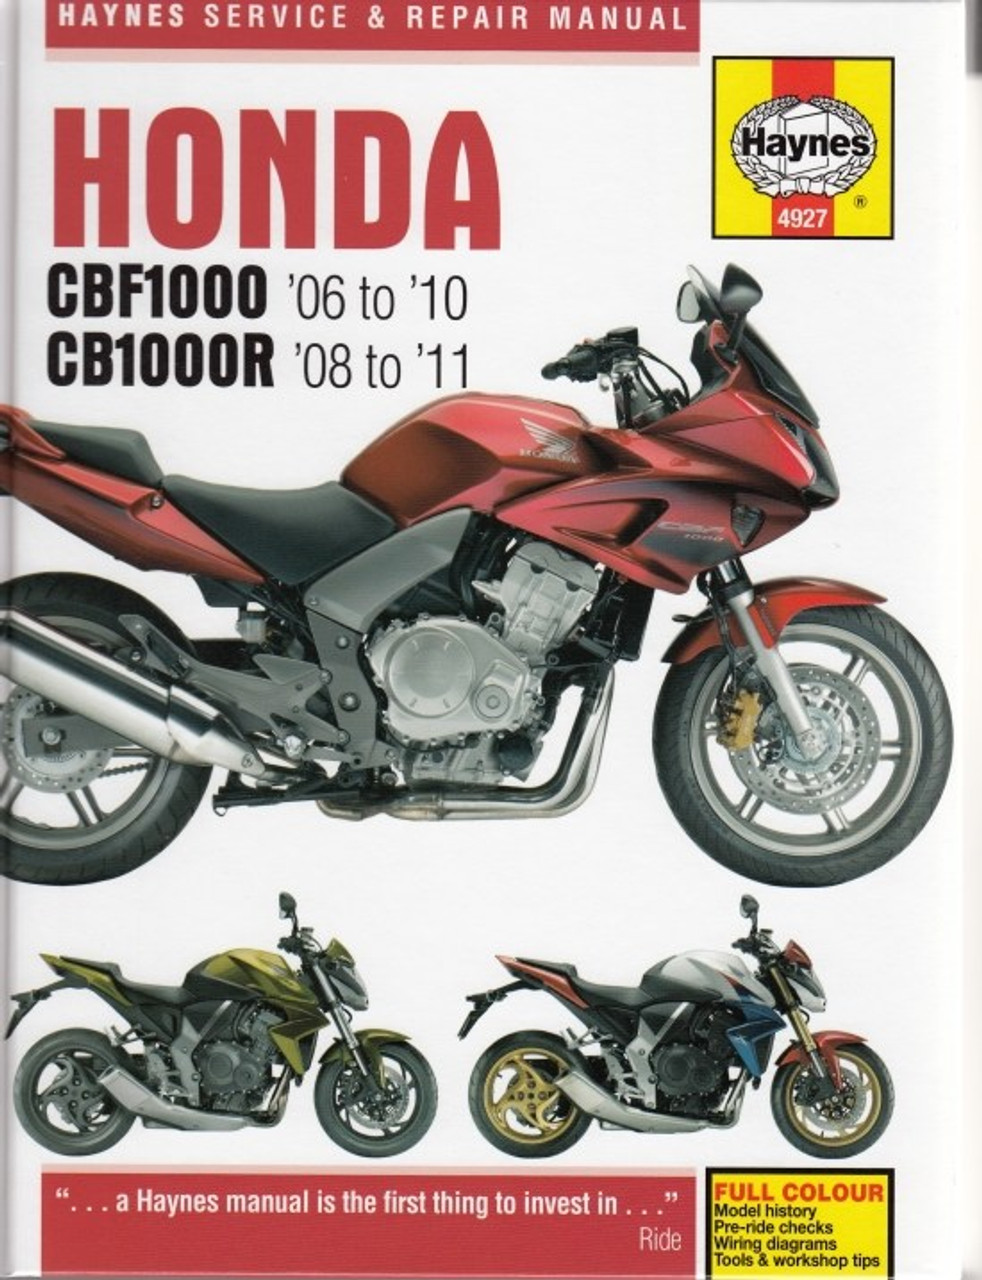 Honda Cbf1000 Cbf1000a Cb1000r Cb1000ra 2006 2011 Workshop Manual